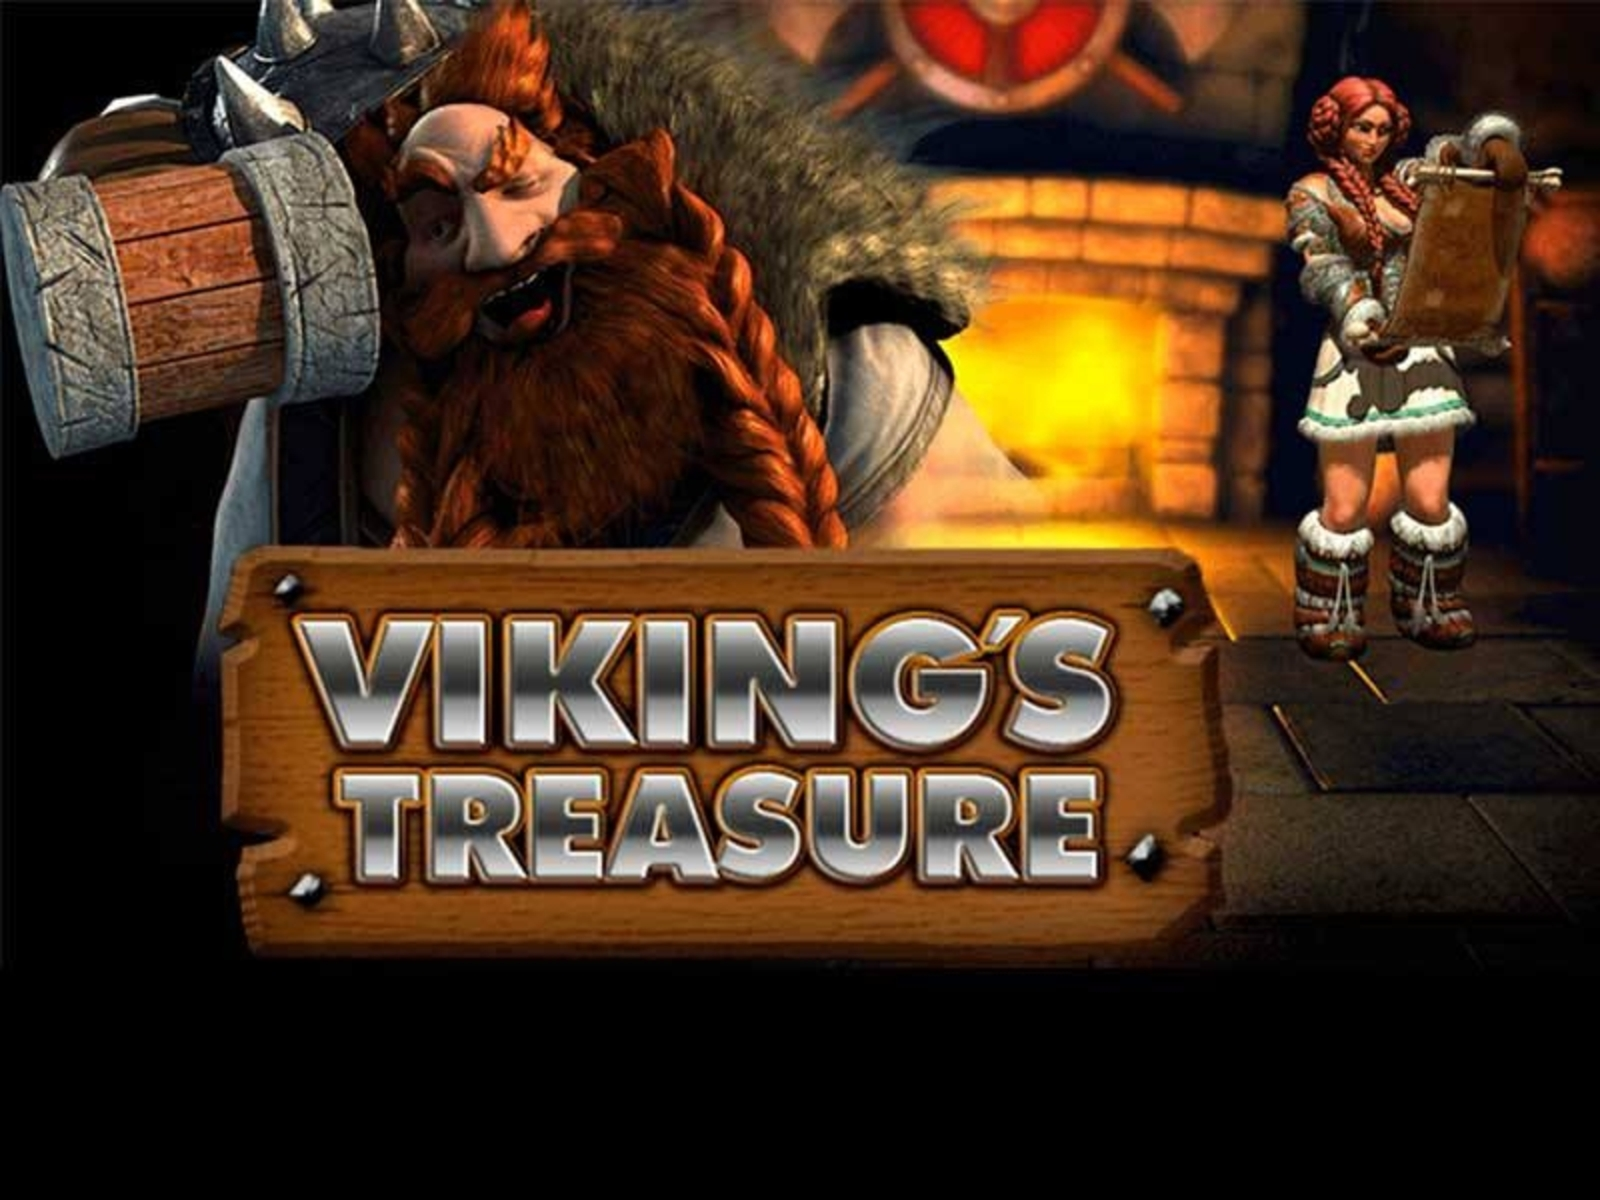 The Vikings Treasure Online Slot Demo Game by NetEnt